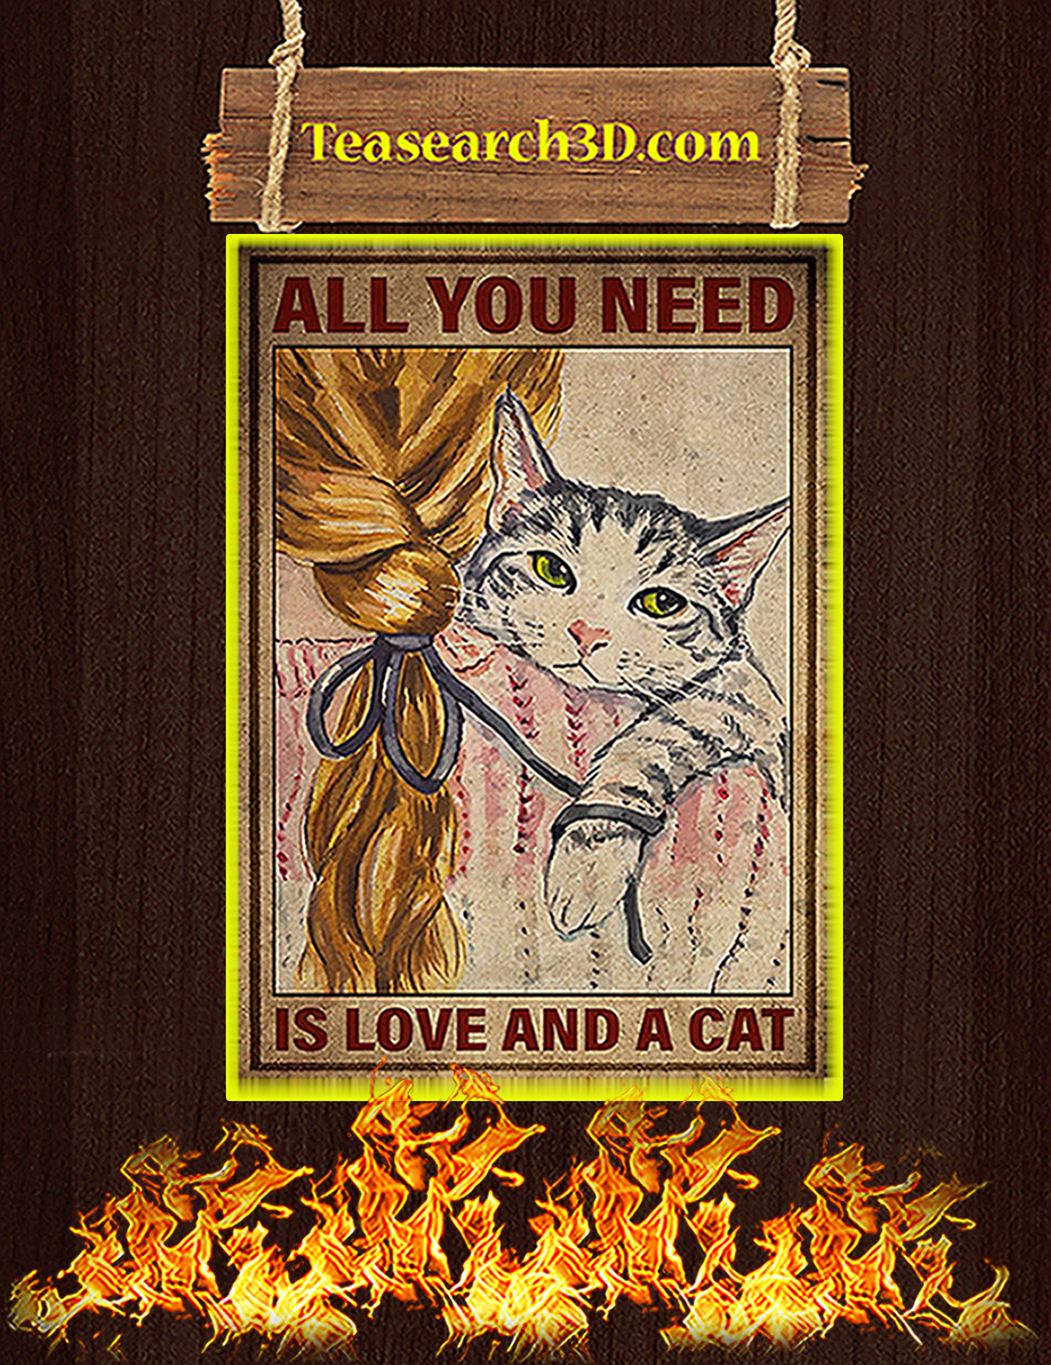 All you need is a love and a cat poster A1